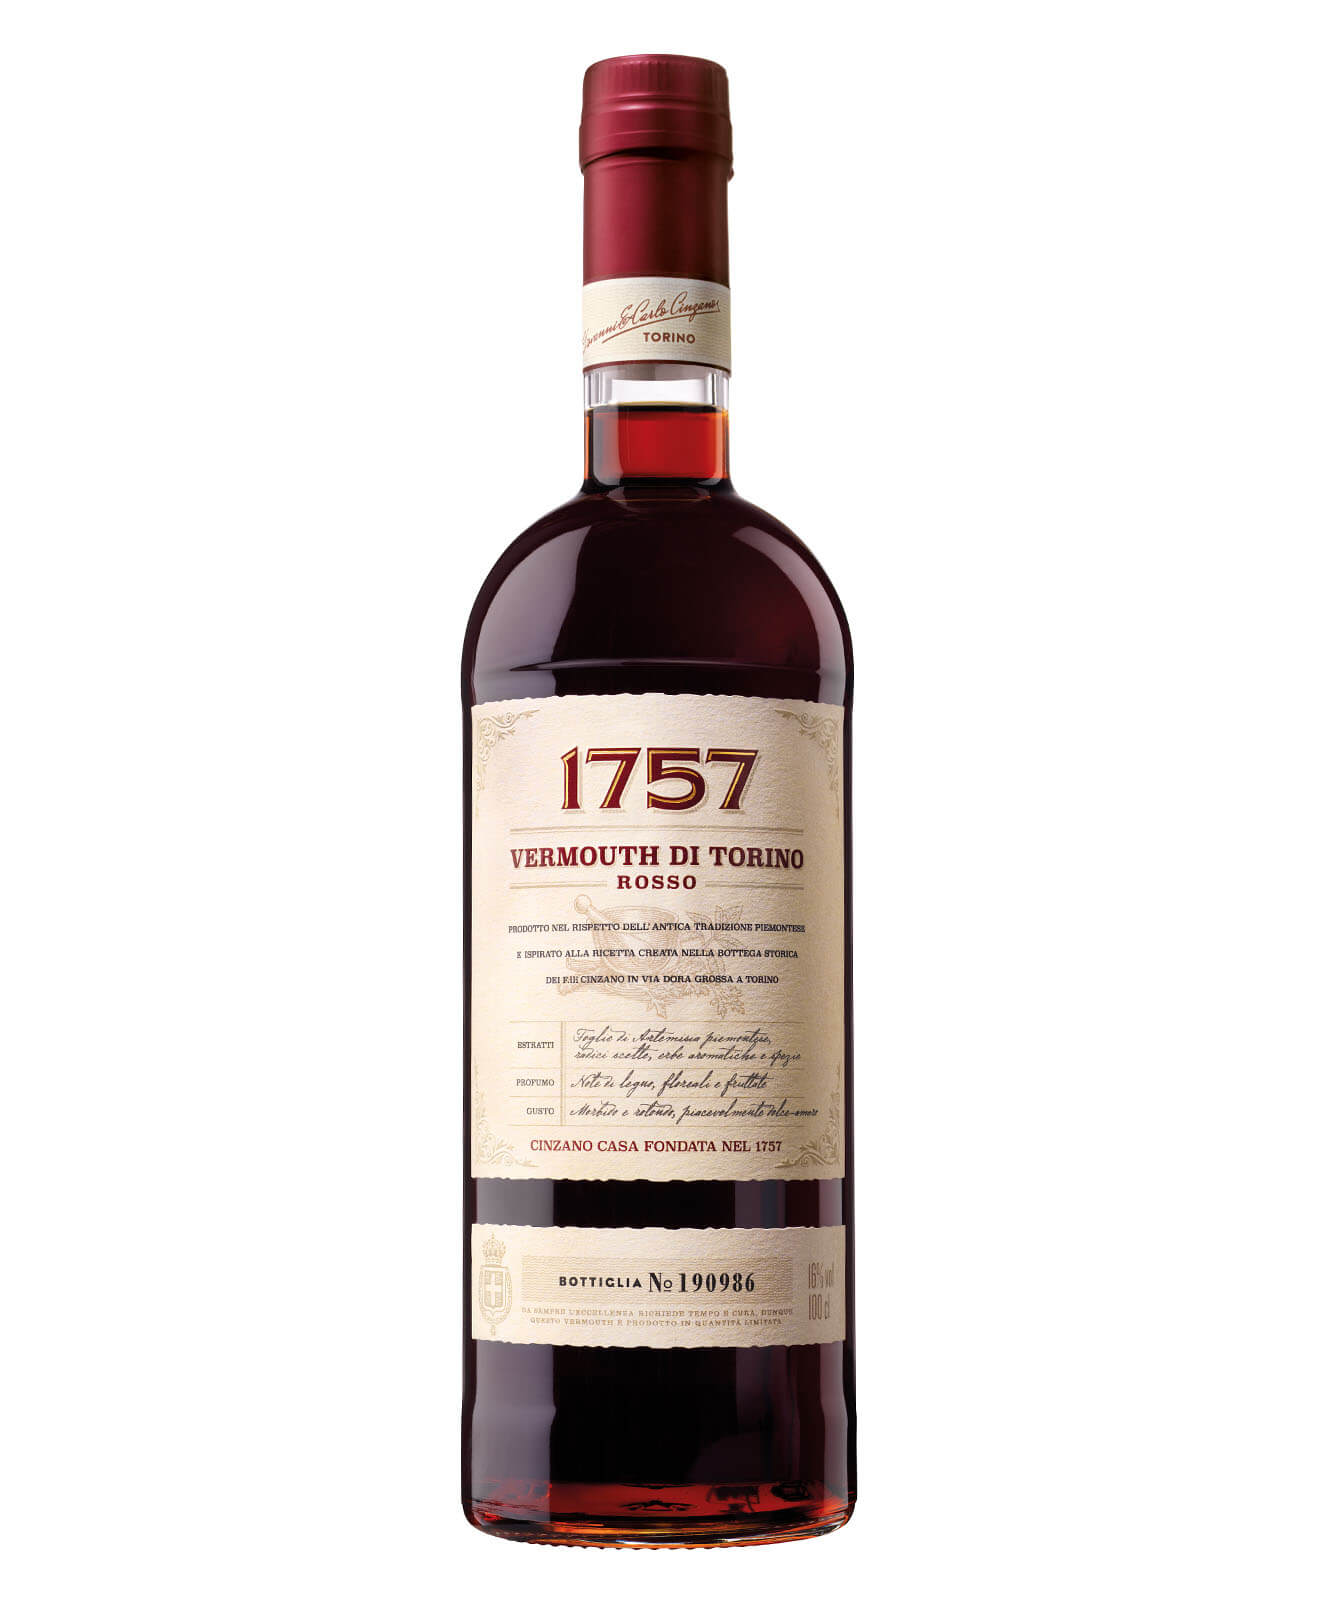 Cinzano 1757 Vermouth di Torino, bottle on white